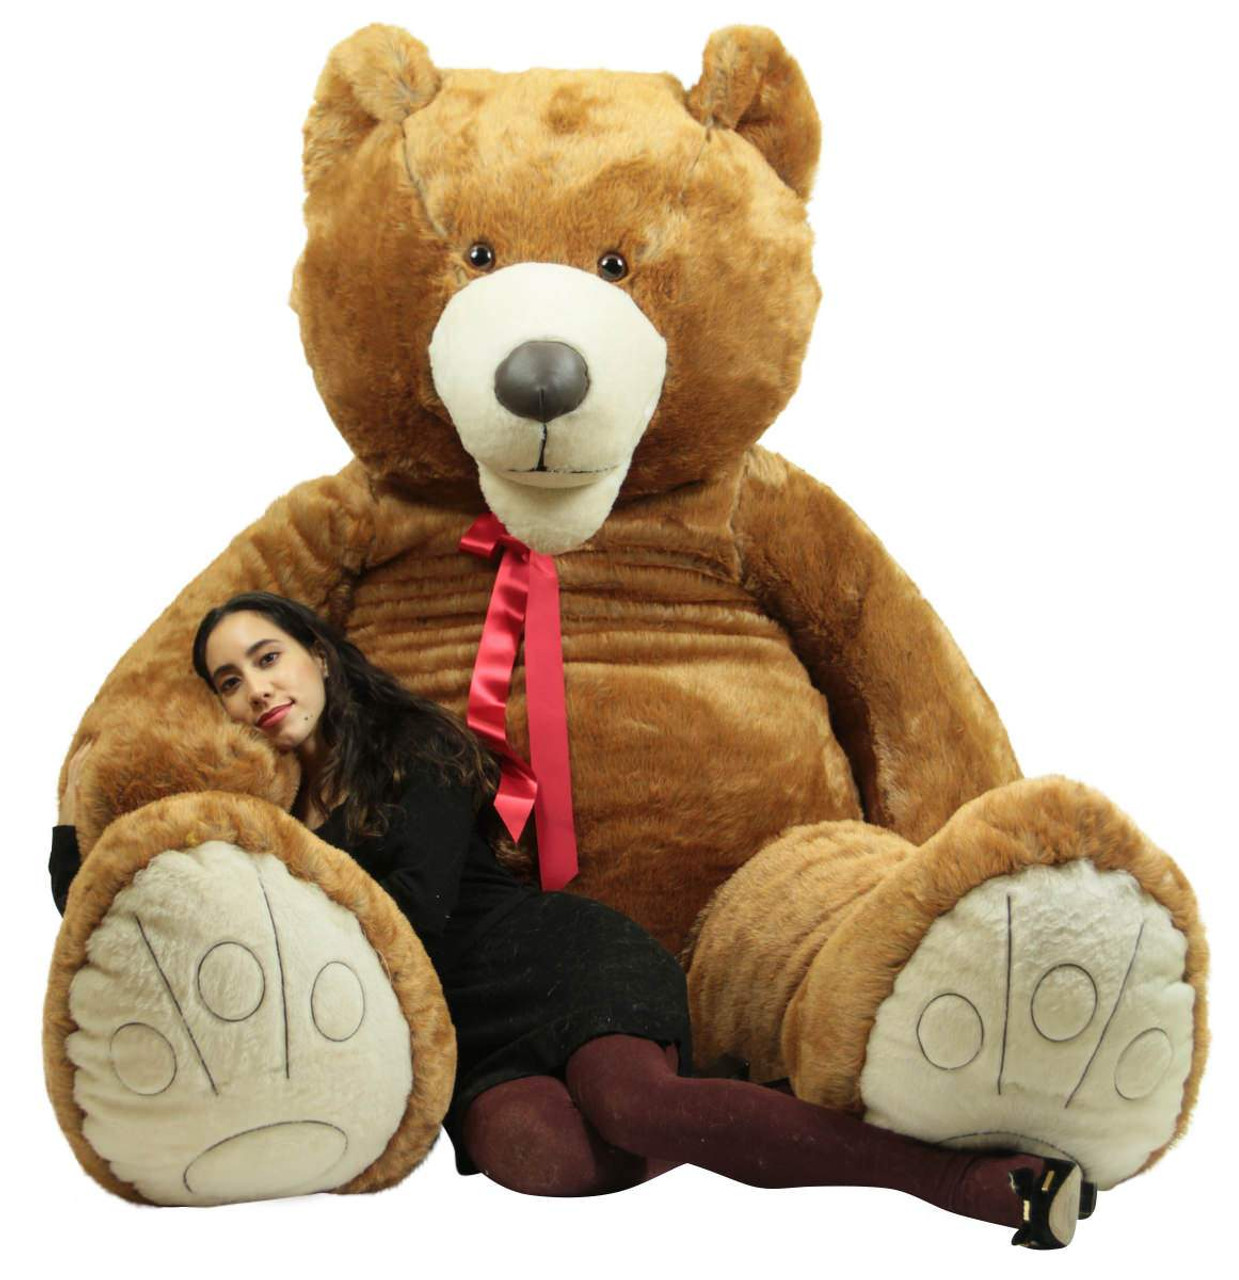 56b7012939f ... American Made 9 Foot Teddy Bear Huge Soft 108 Inch Giant Teddybear  Brown Made in USA ...